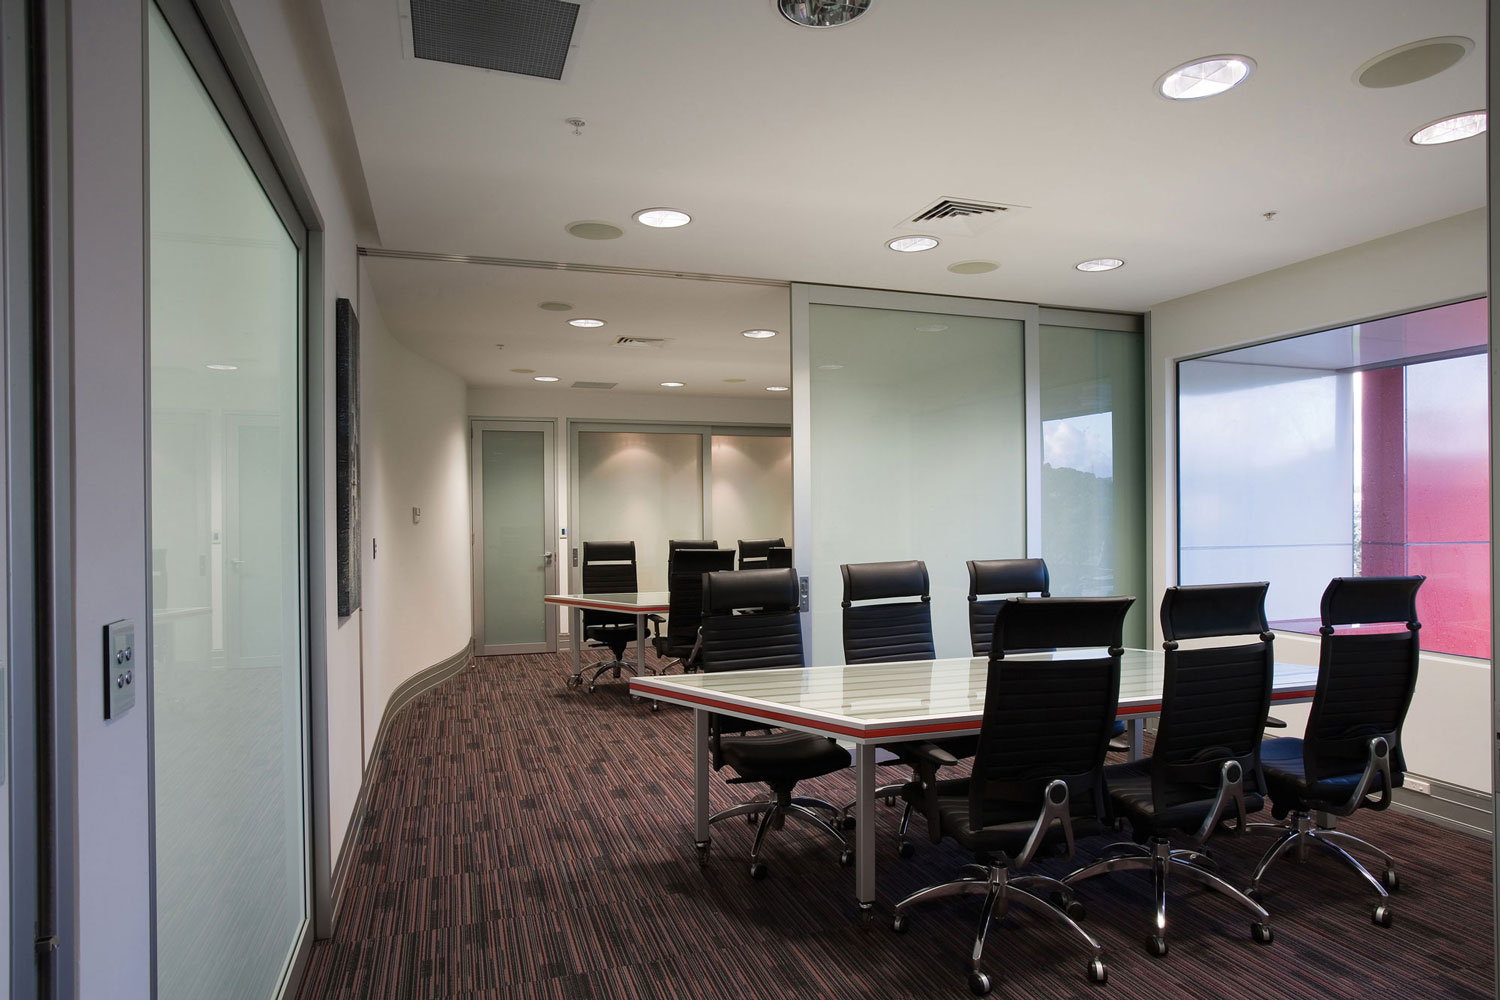 FH Ceiling Mount Boardroom Overtaking System